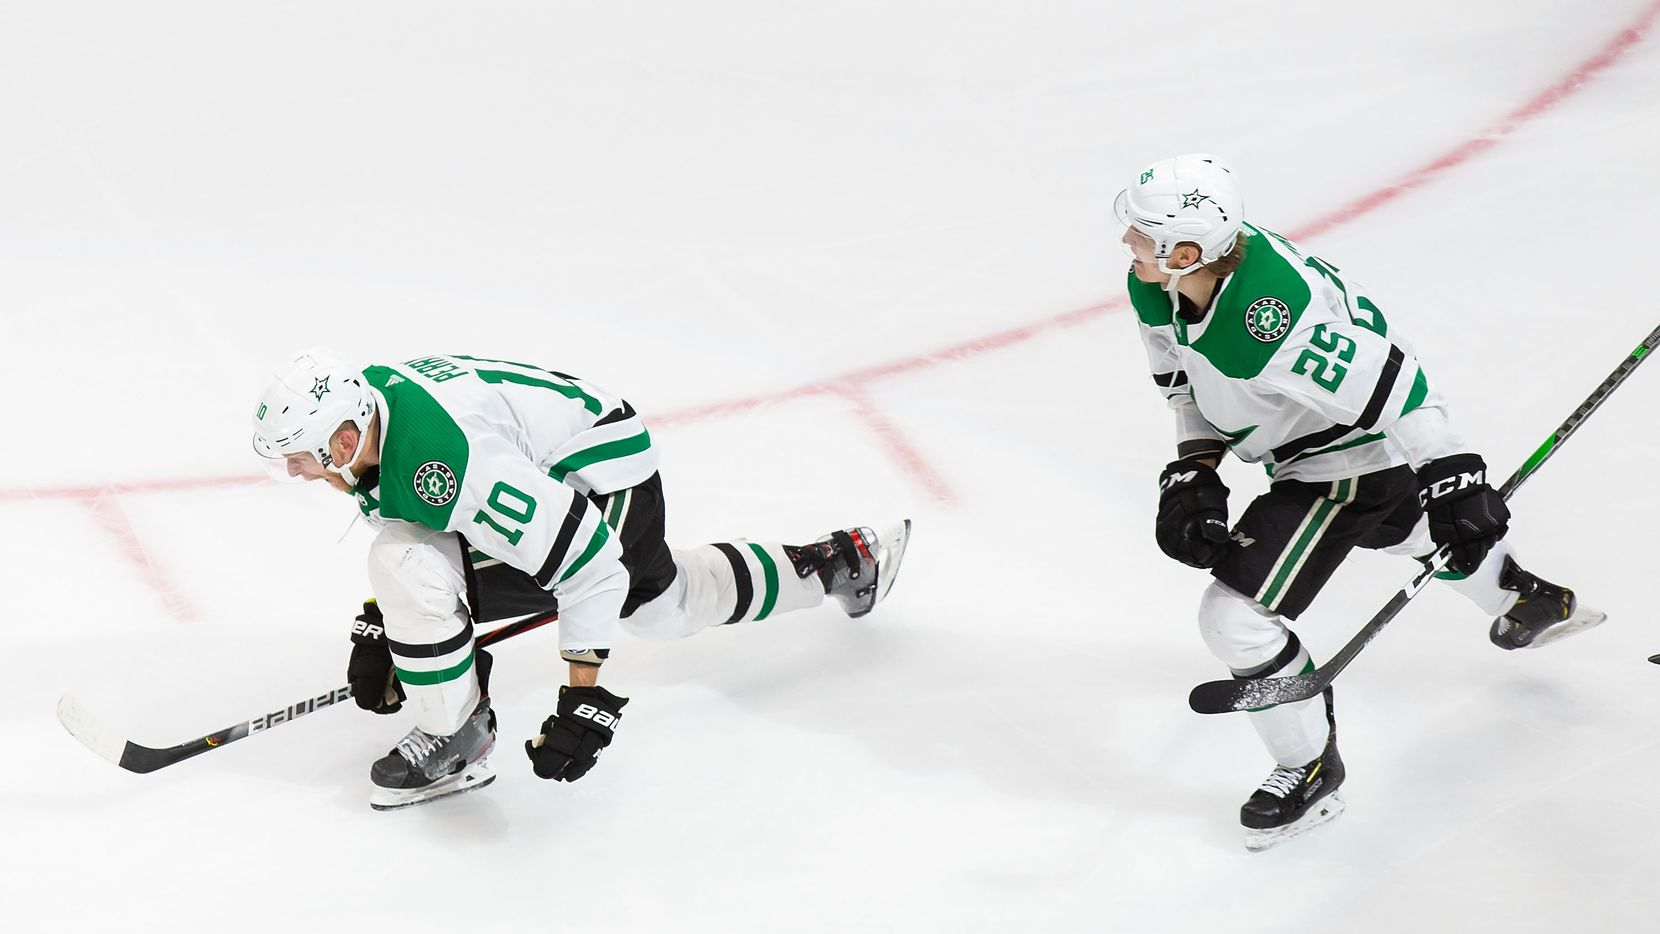 Corey Perry (10) and Joel Kiviranta (25) of the Dallas Stars celebrate Perry's game winning goal against the Tampa Bay Lightning during Game Five of the Stanley Cup Final at Rogers Place in Edmonton, Alberta, Canada on Saturday, September 26, 2020.